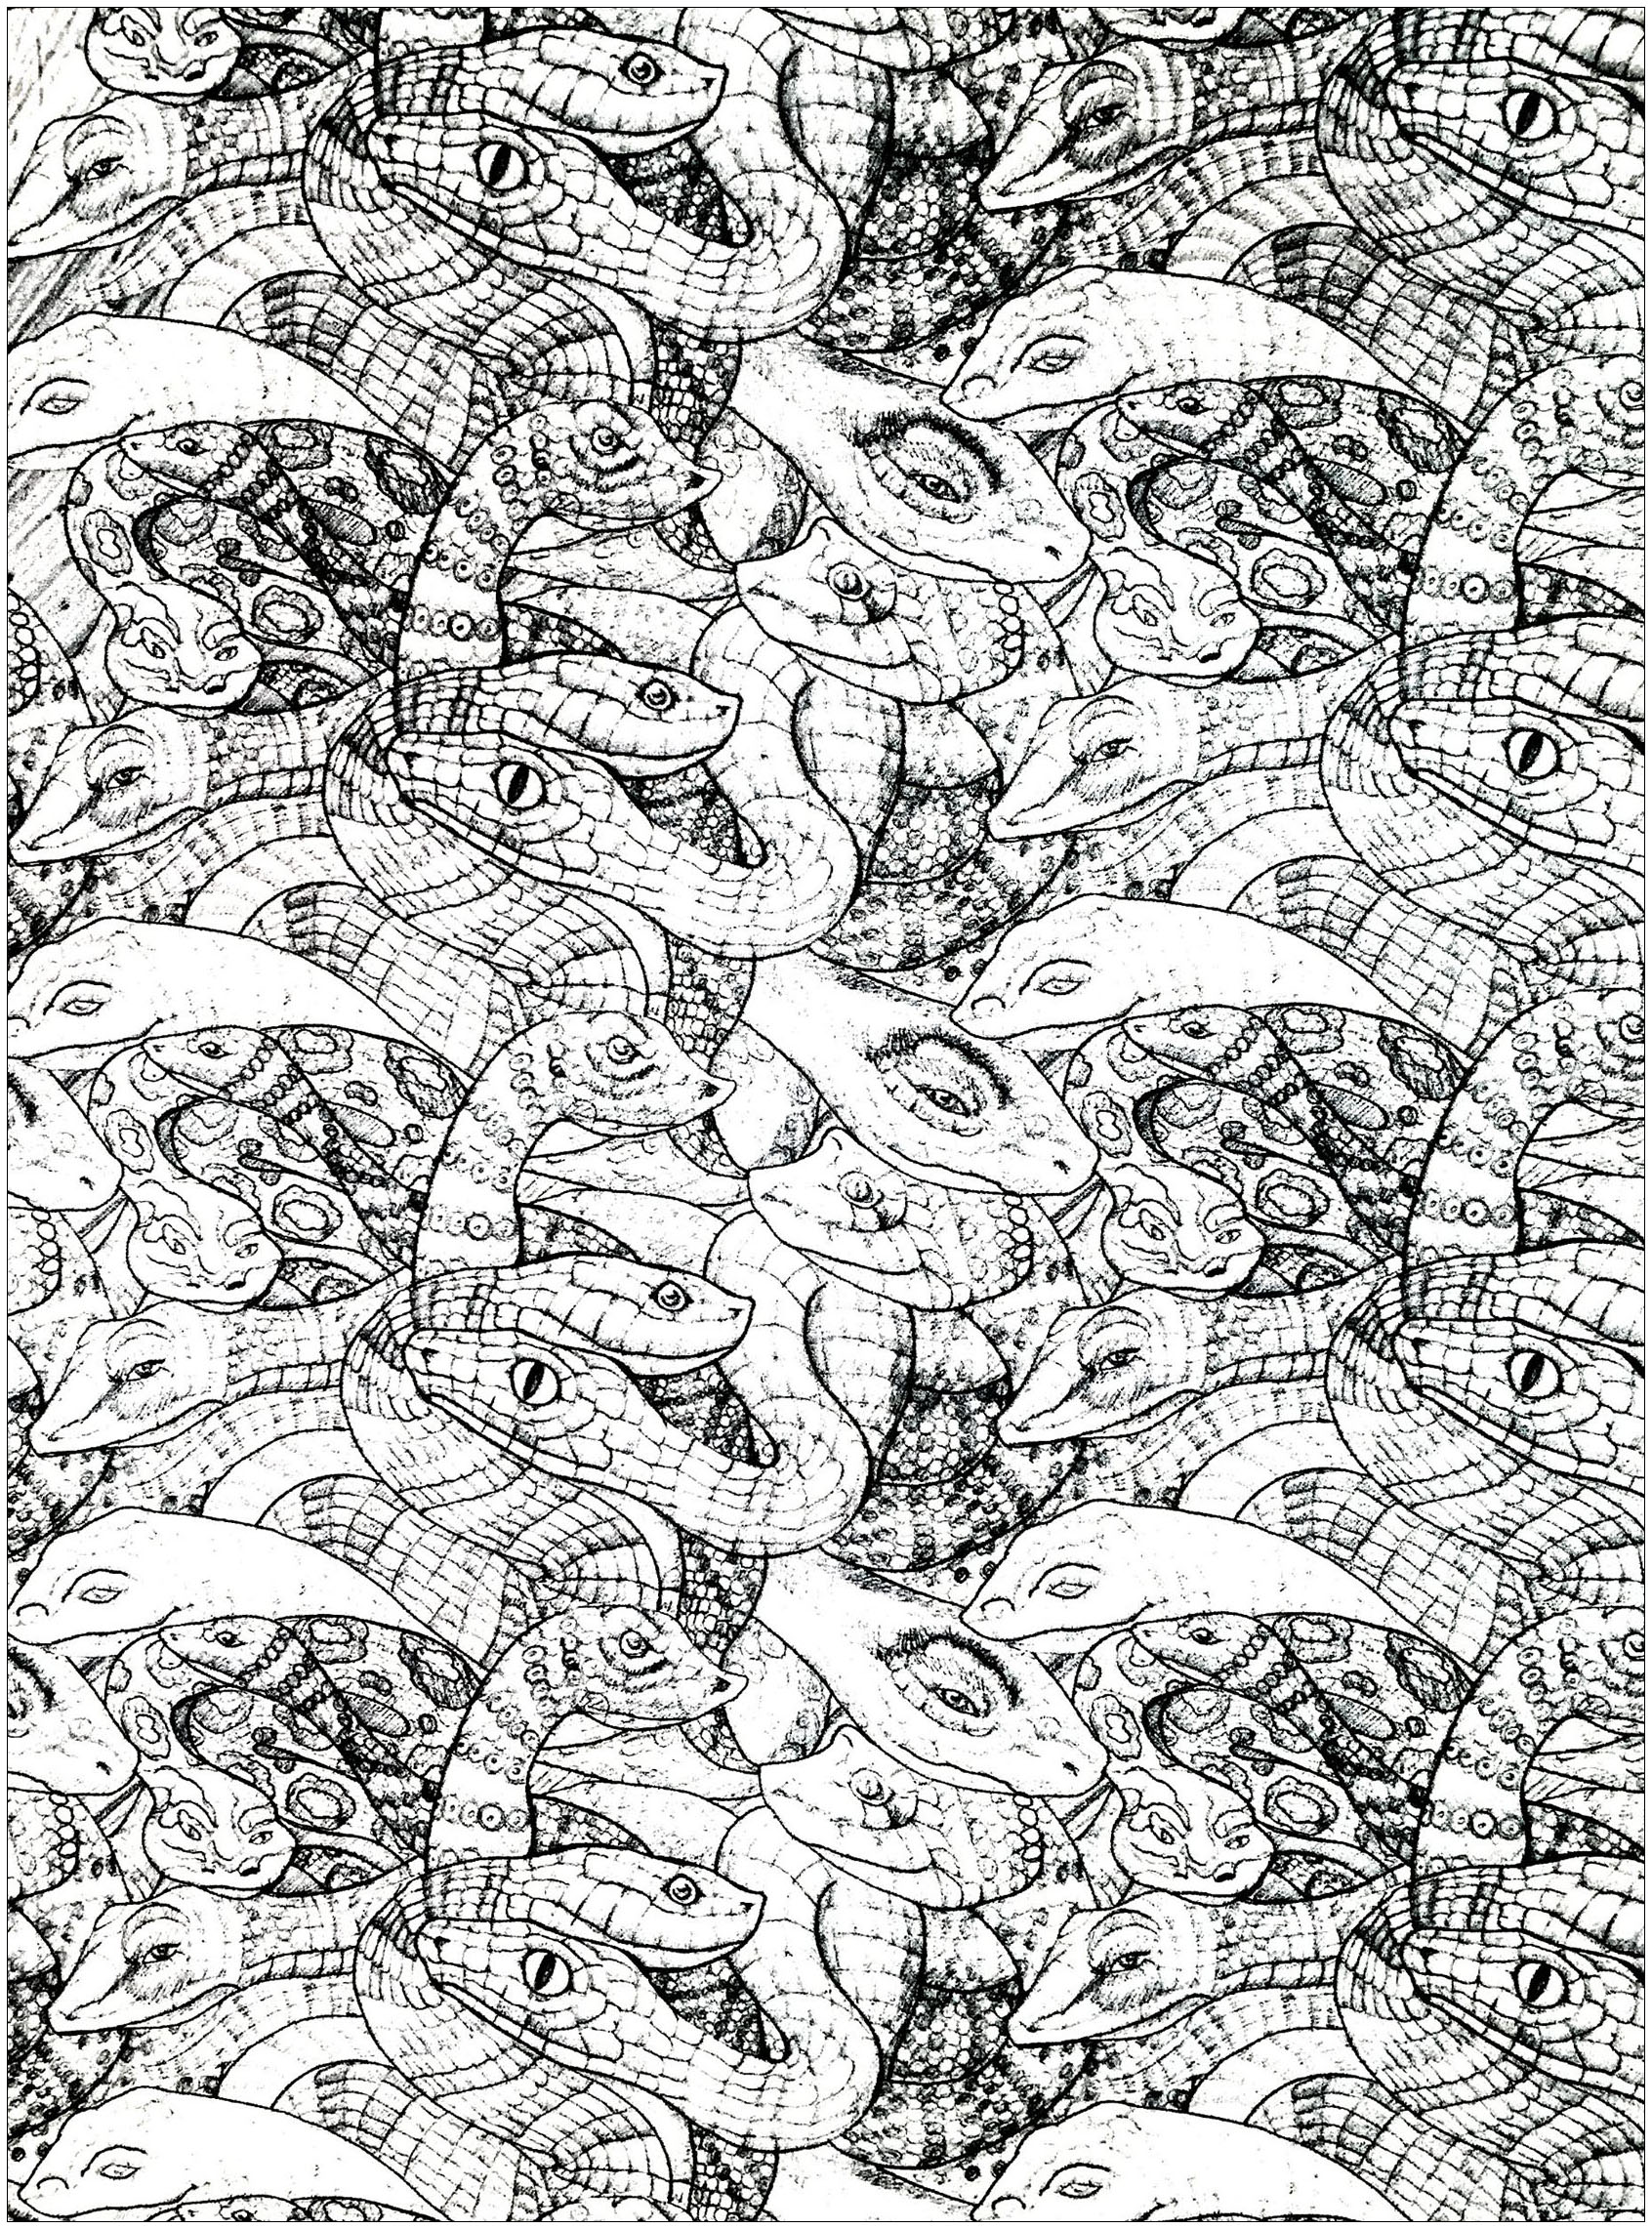 Very complex coloring page with snakes (2nd model)